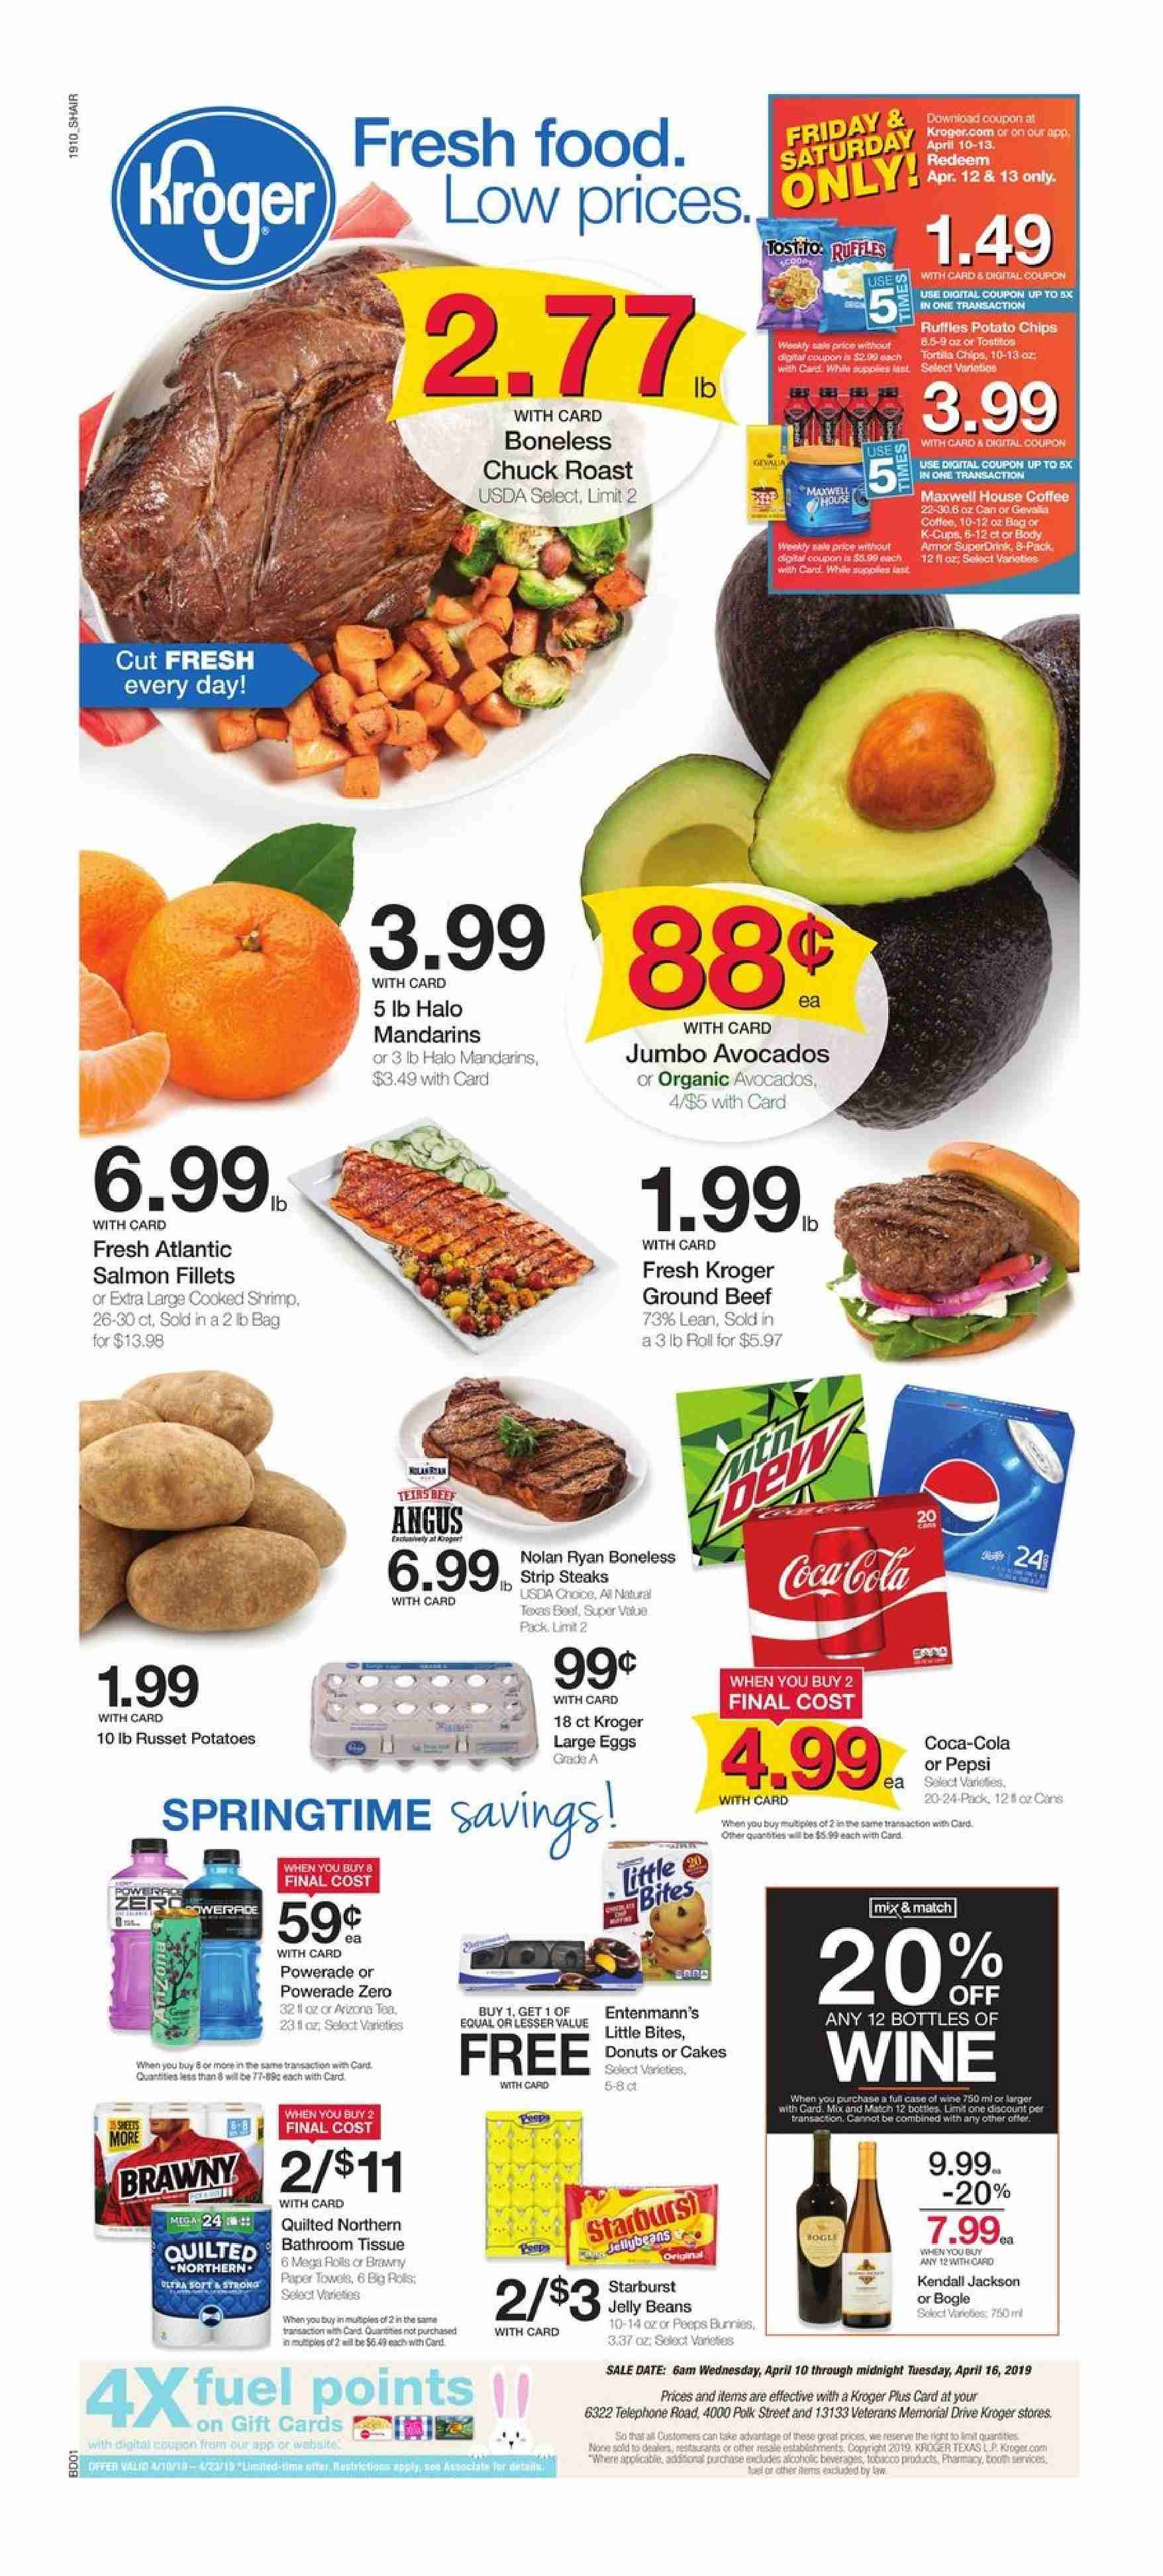 Kroger Flyer - 04.10.2019 - 04.16.2019 - Sales products - avocado, beans, beef meat, case, coffee, eggs, fuel, ground beef, maxwell house, maxwell house coffee, russet potatoes, salmon, shrimp, polk, potato chips, potatoes, powerade, organic, chips, quilted northern, wine, jelly, roast. Page 1.